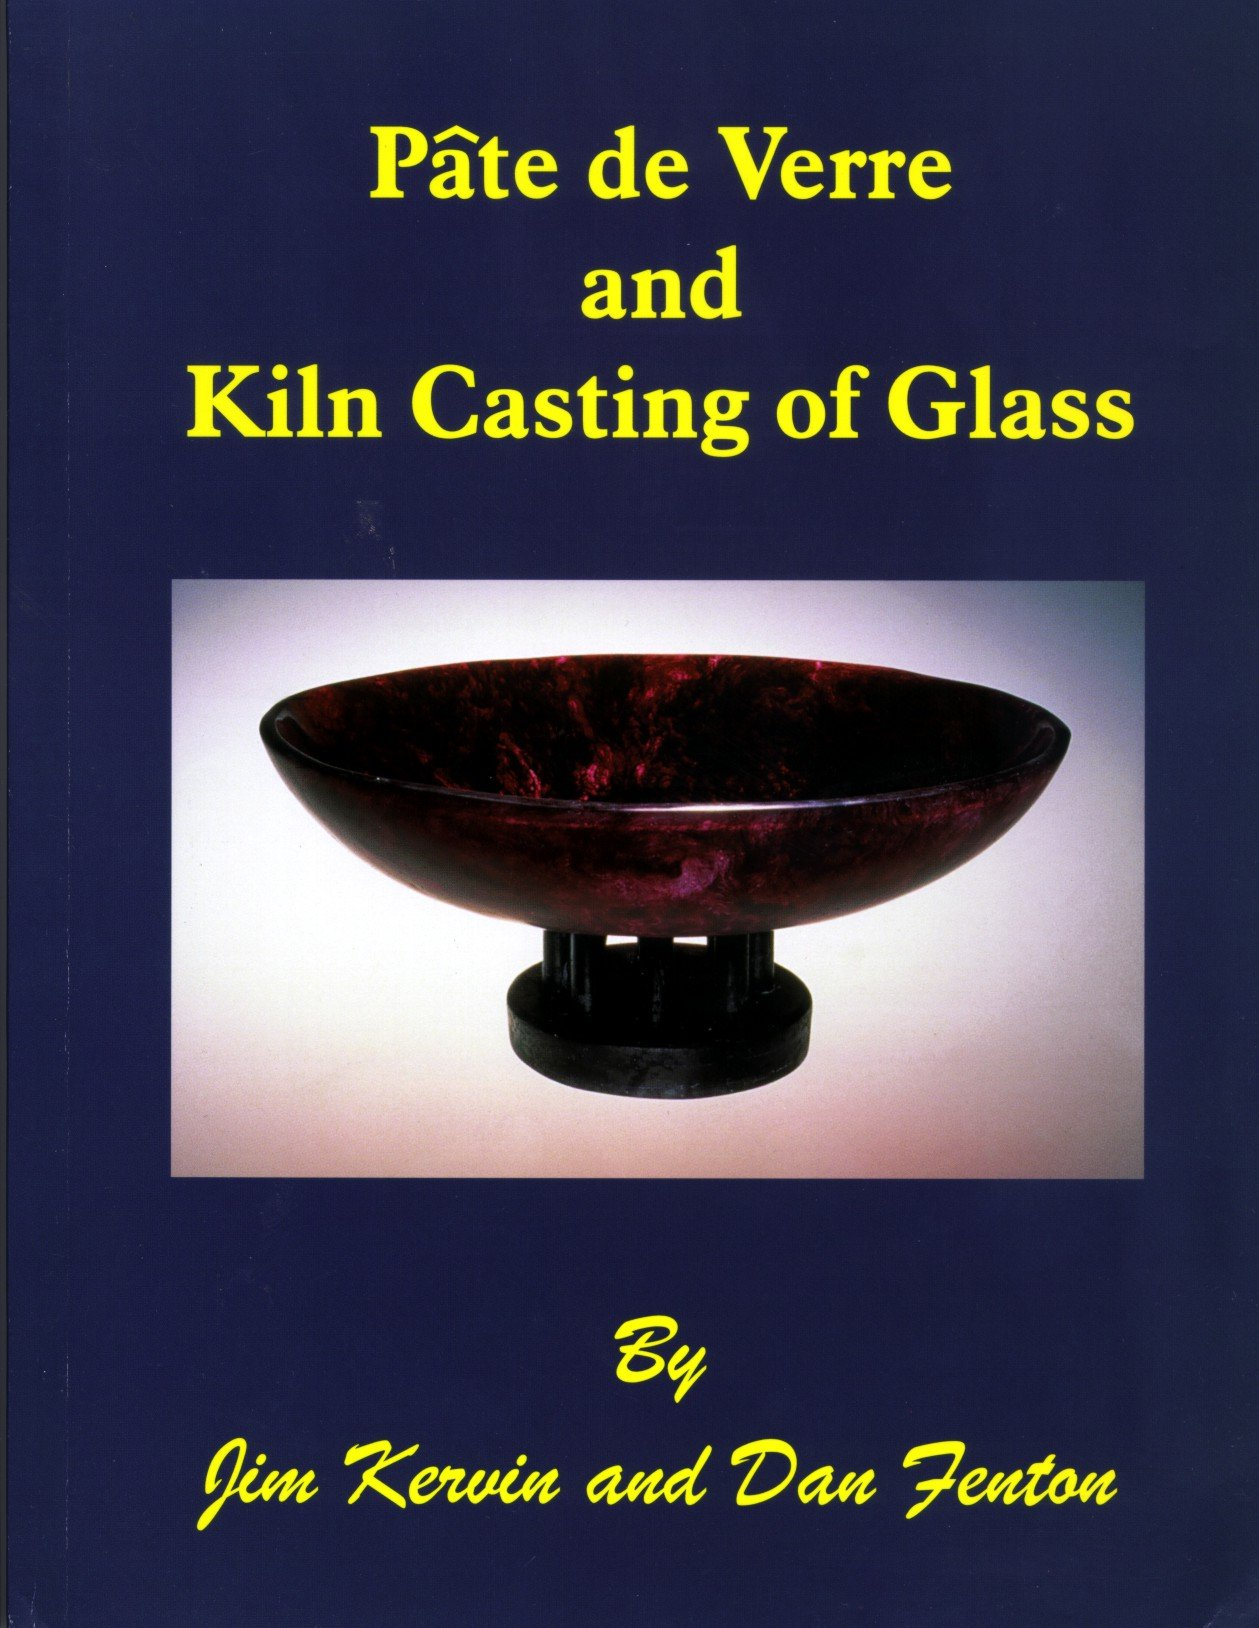 p acirc te de verre and kiln casting of glass james kervin dan fenton pacircte de verre and kiln casting of glass james kervin dan fenton 9780965145831 com books